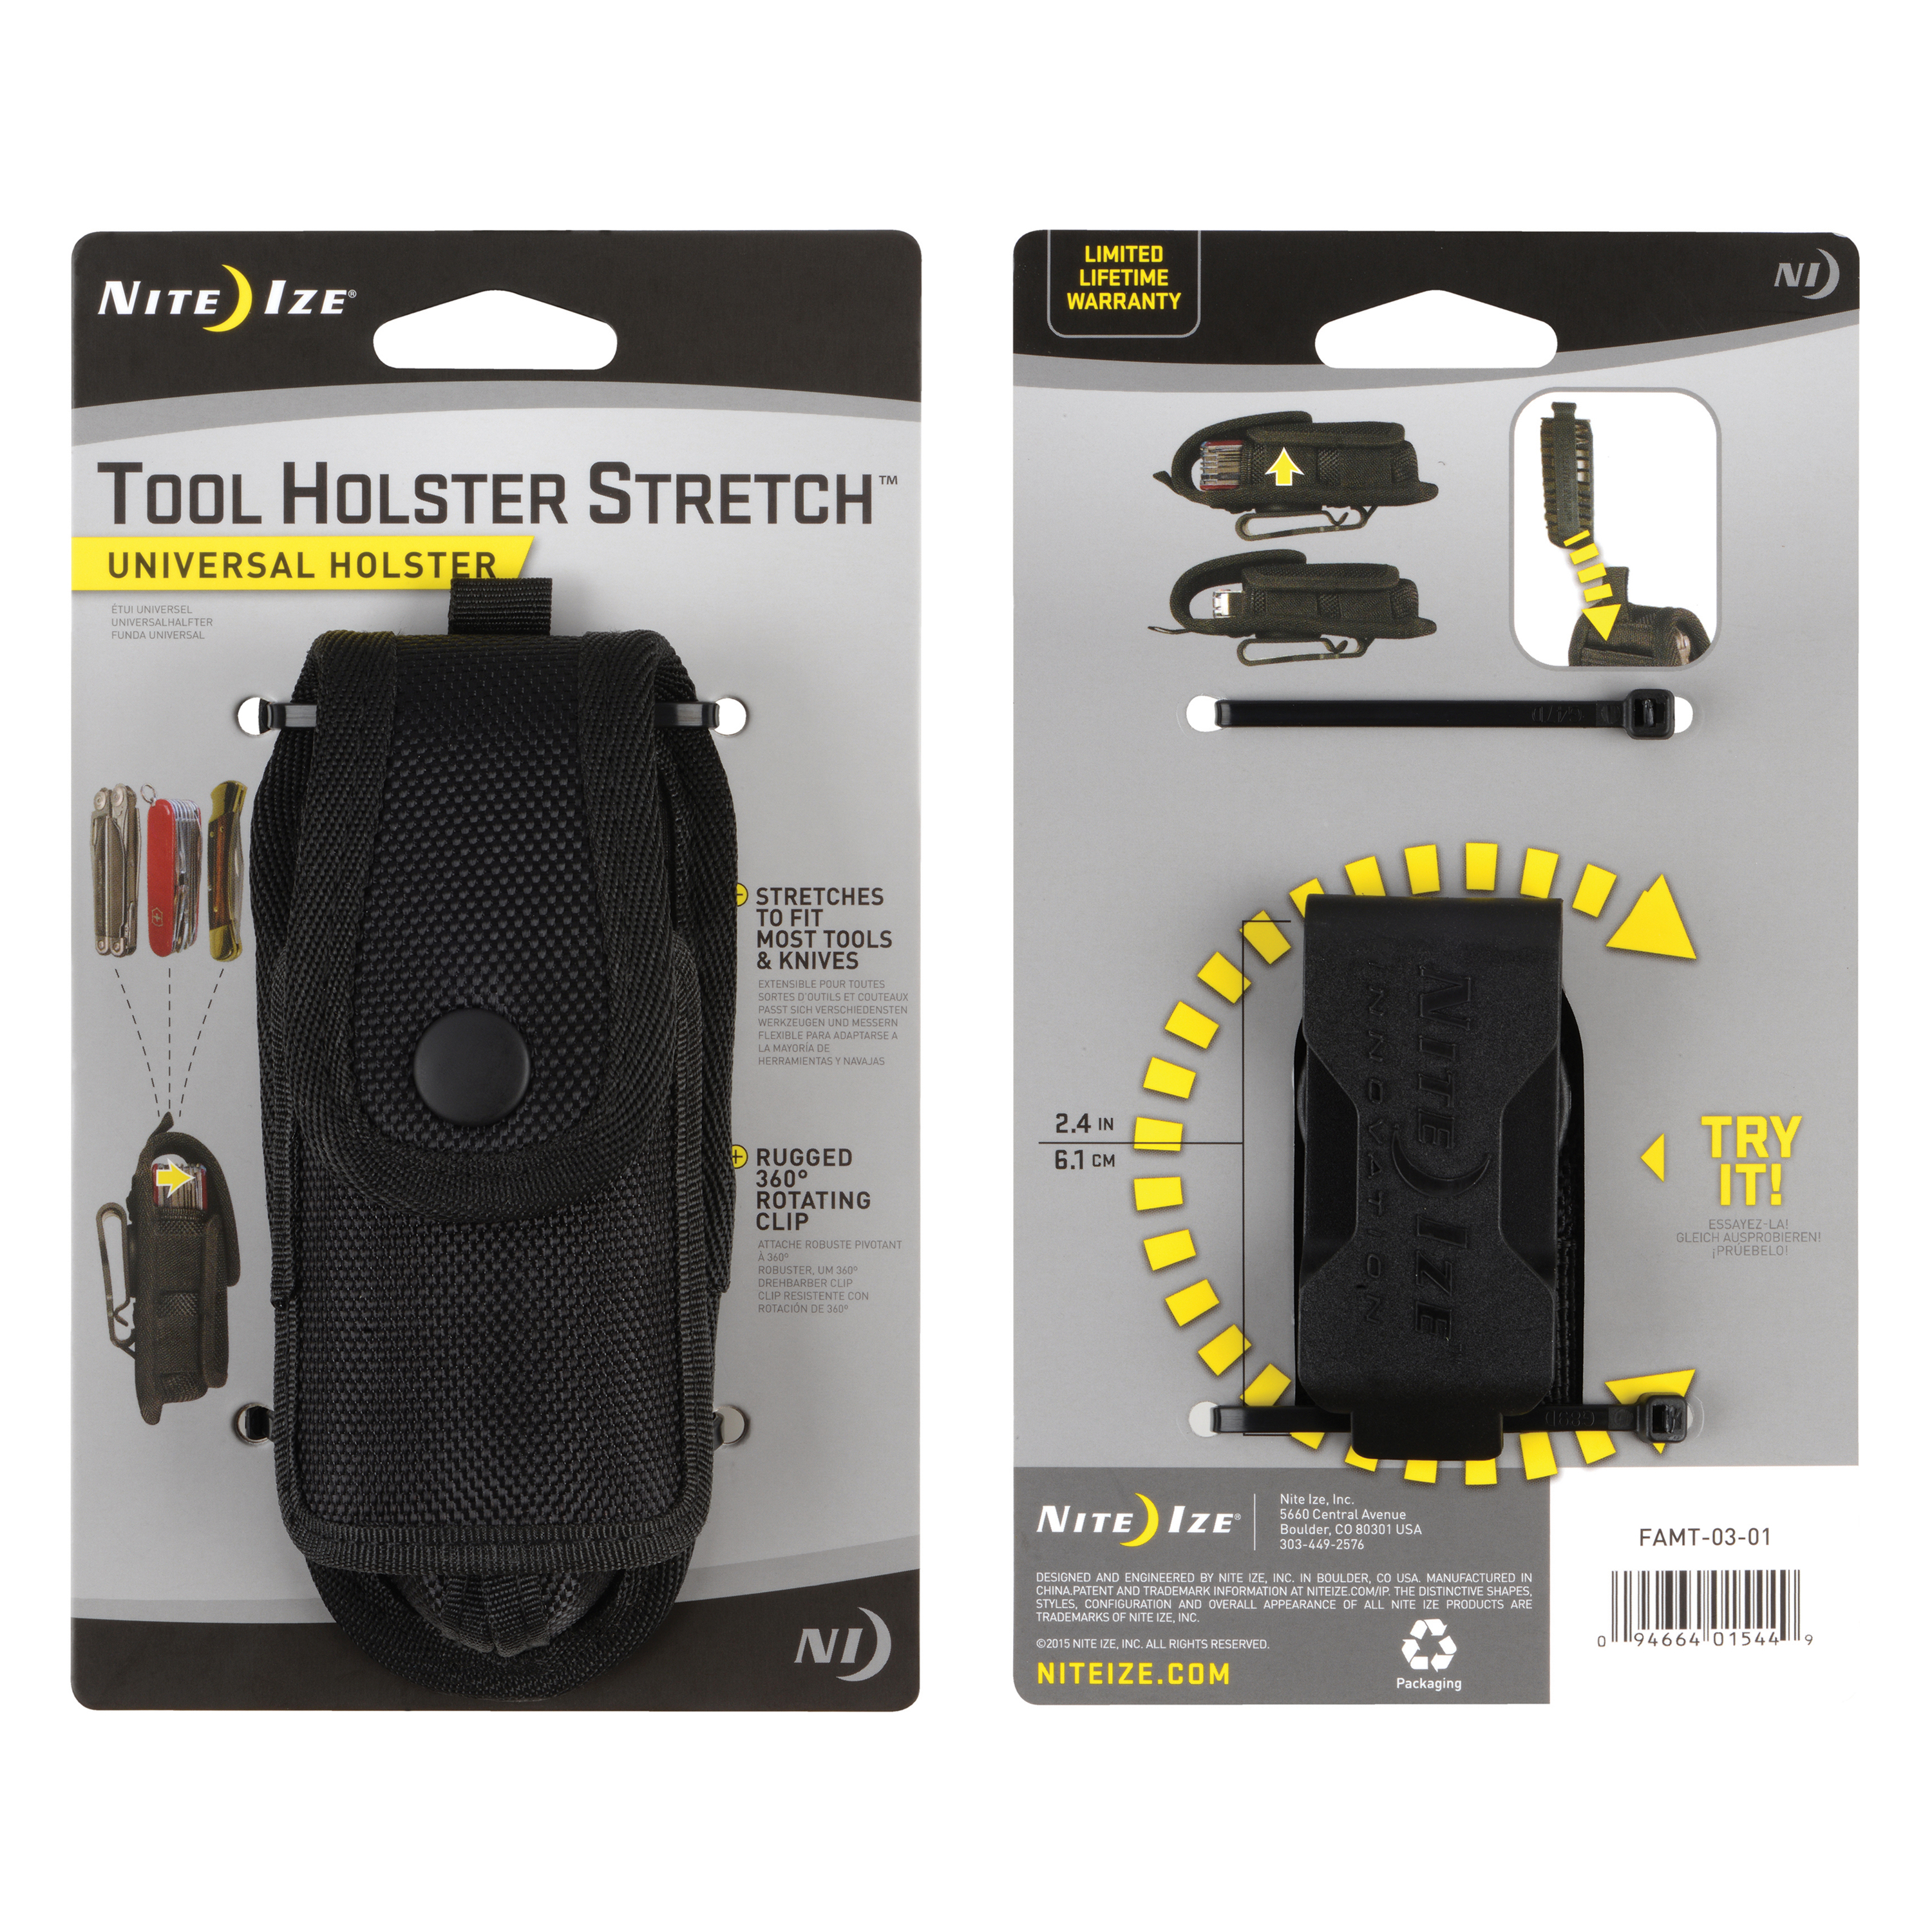 FAMT-03-01 - NITE IZE Tool Holster Stretch Universal Holster